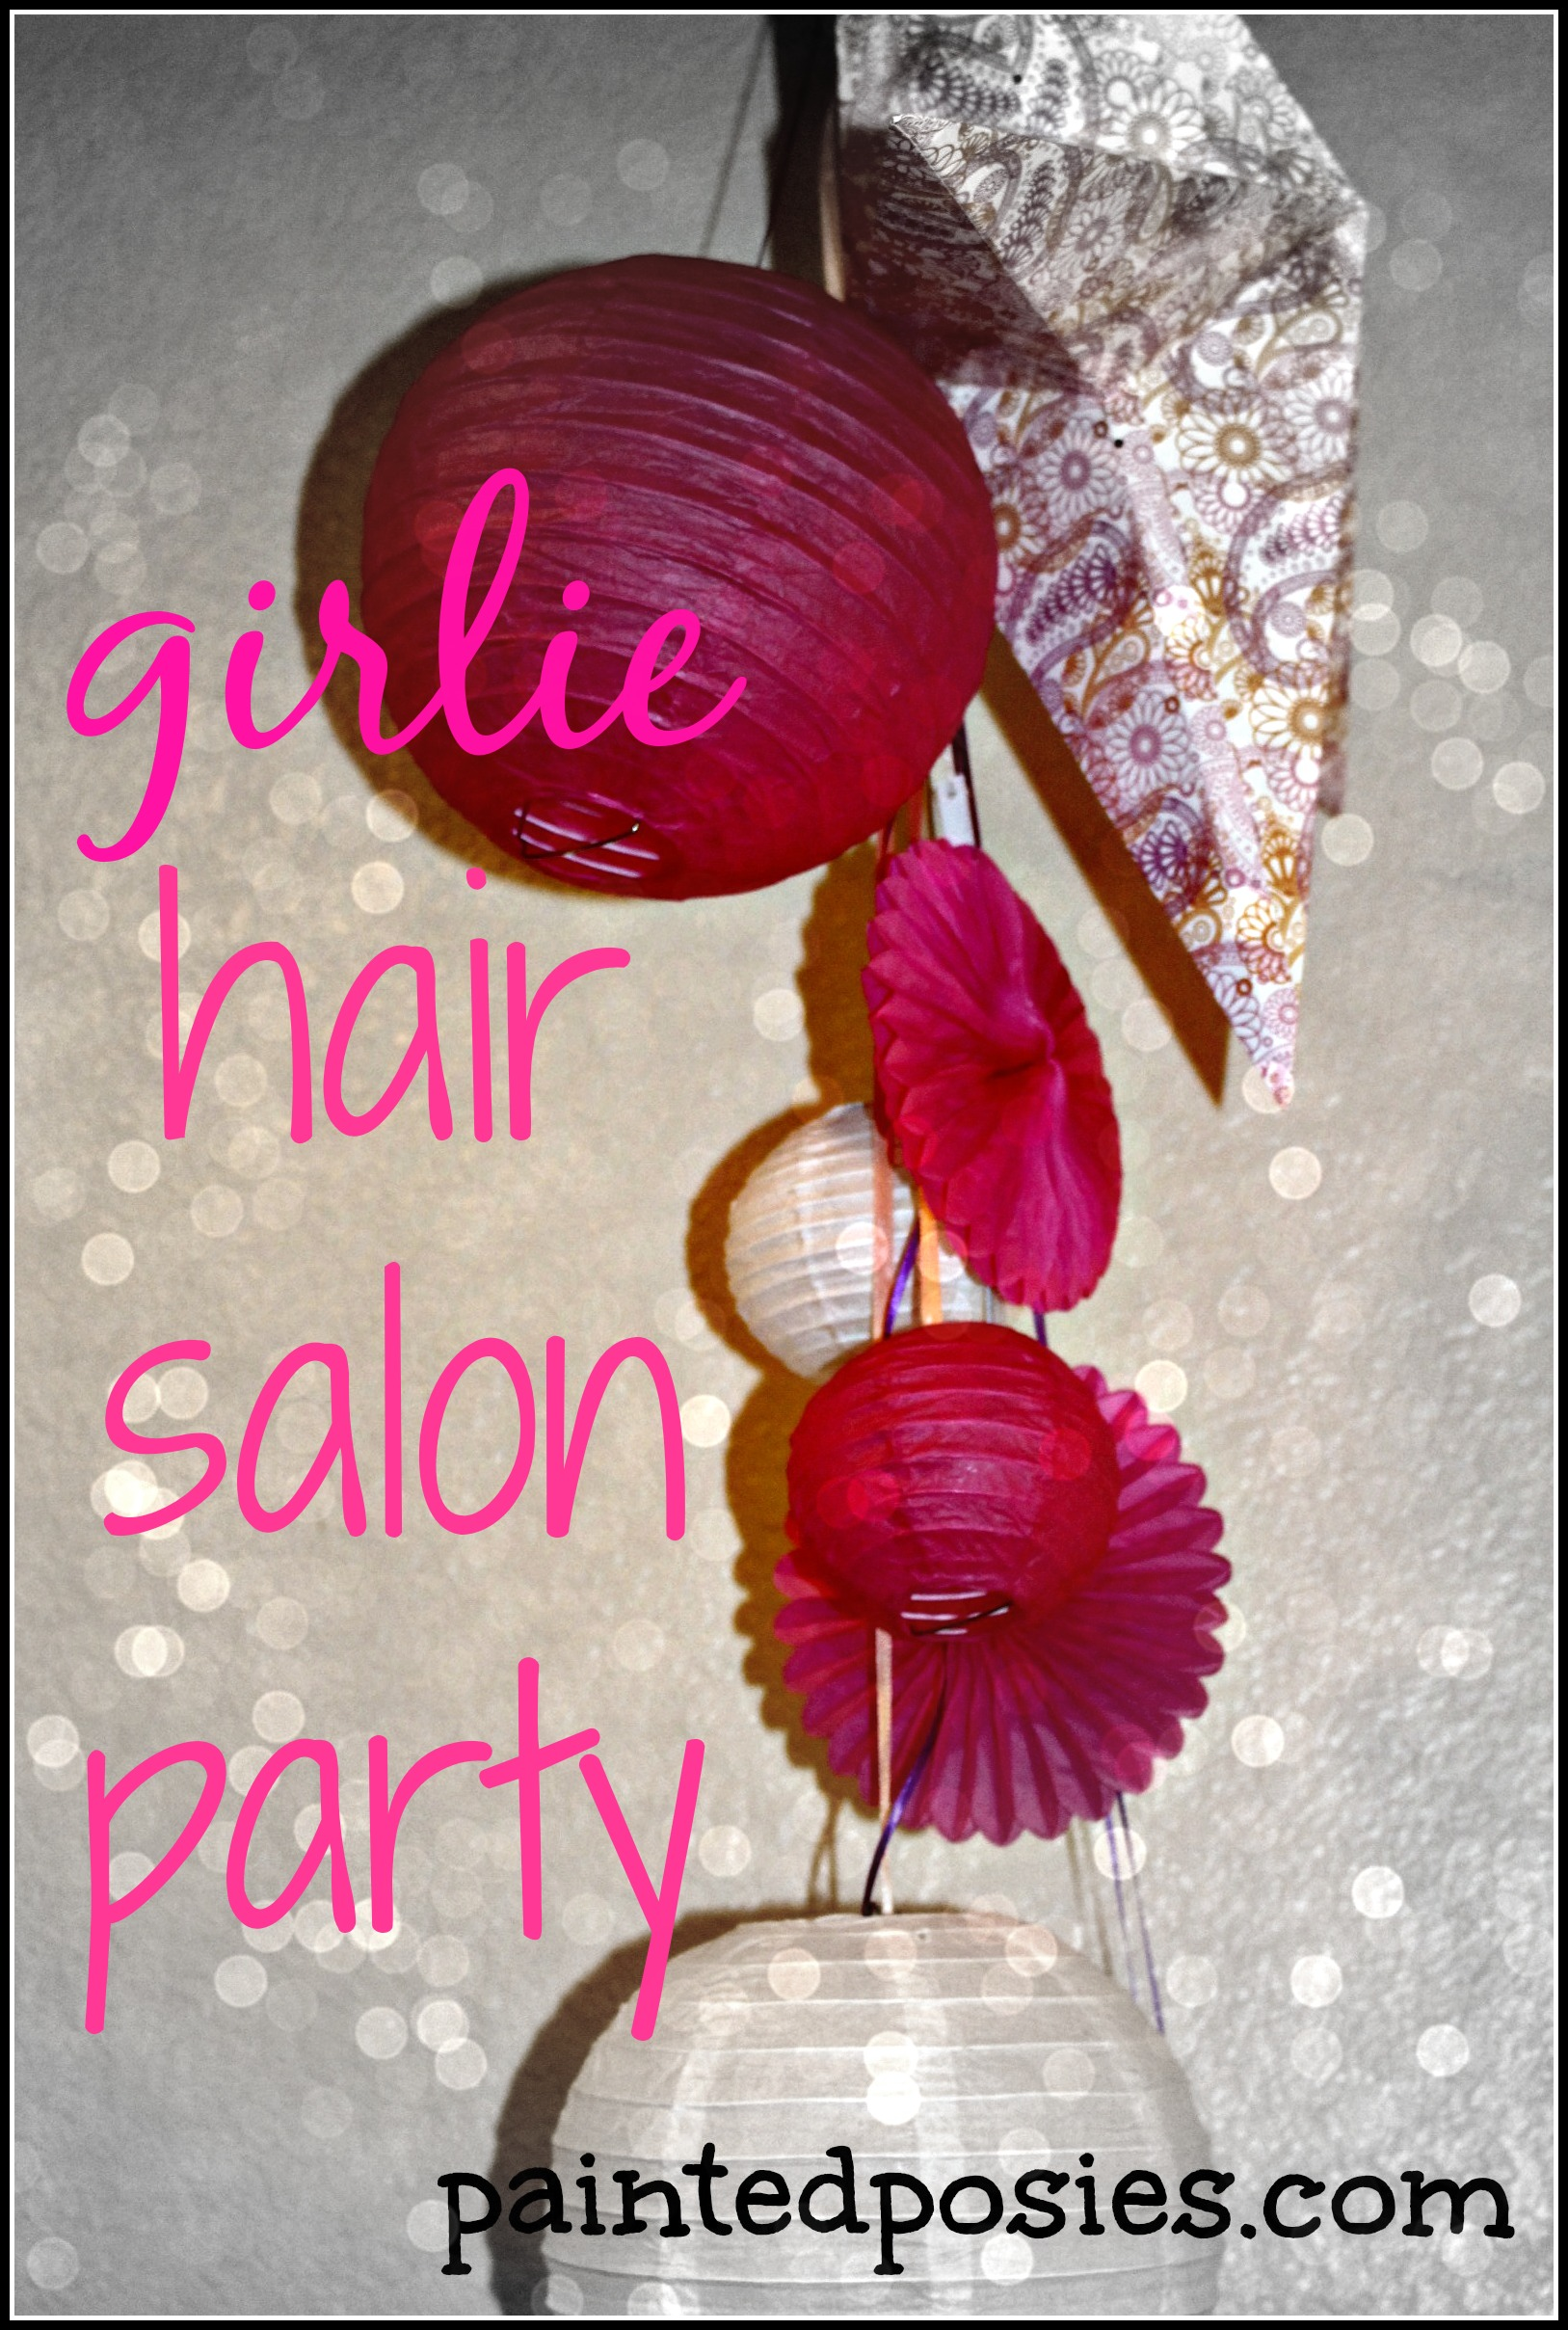 Girlie Hair Salon Party